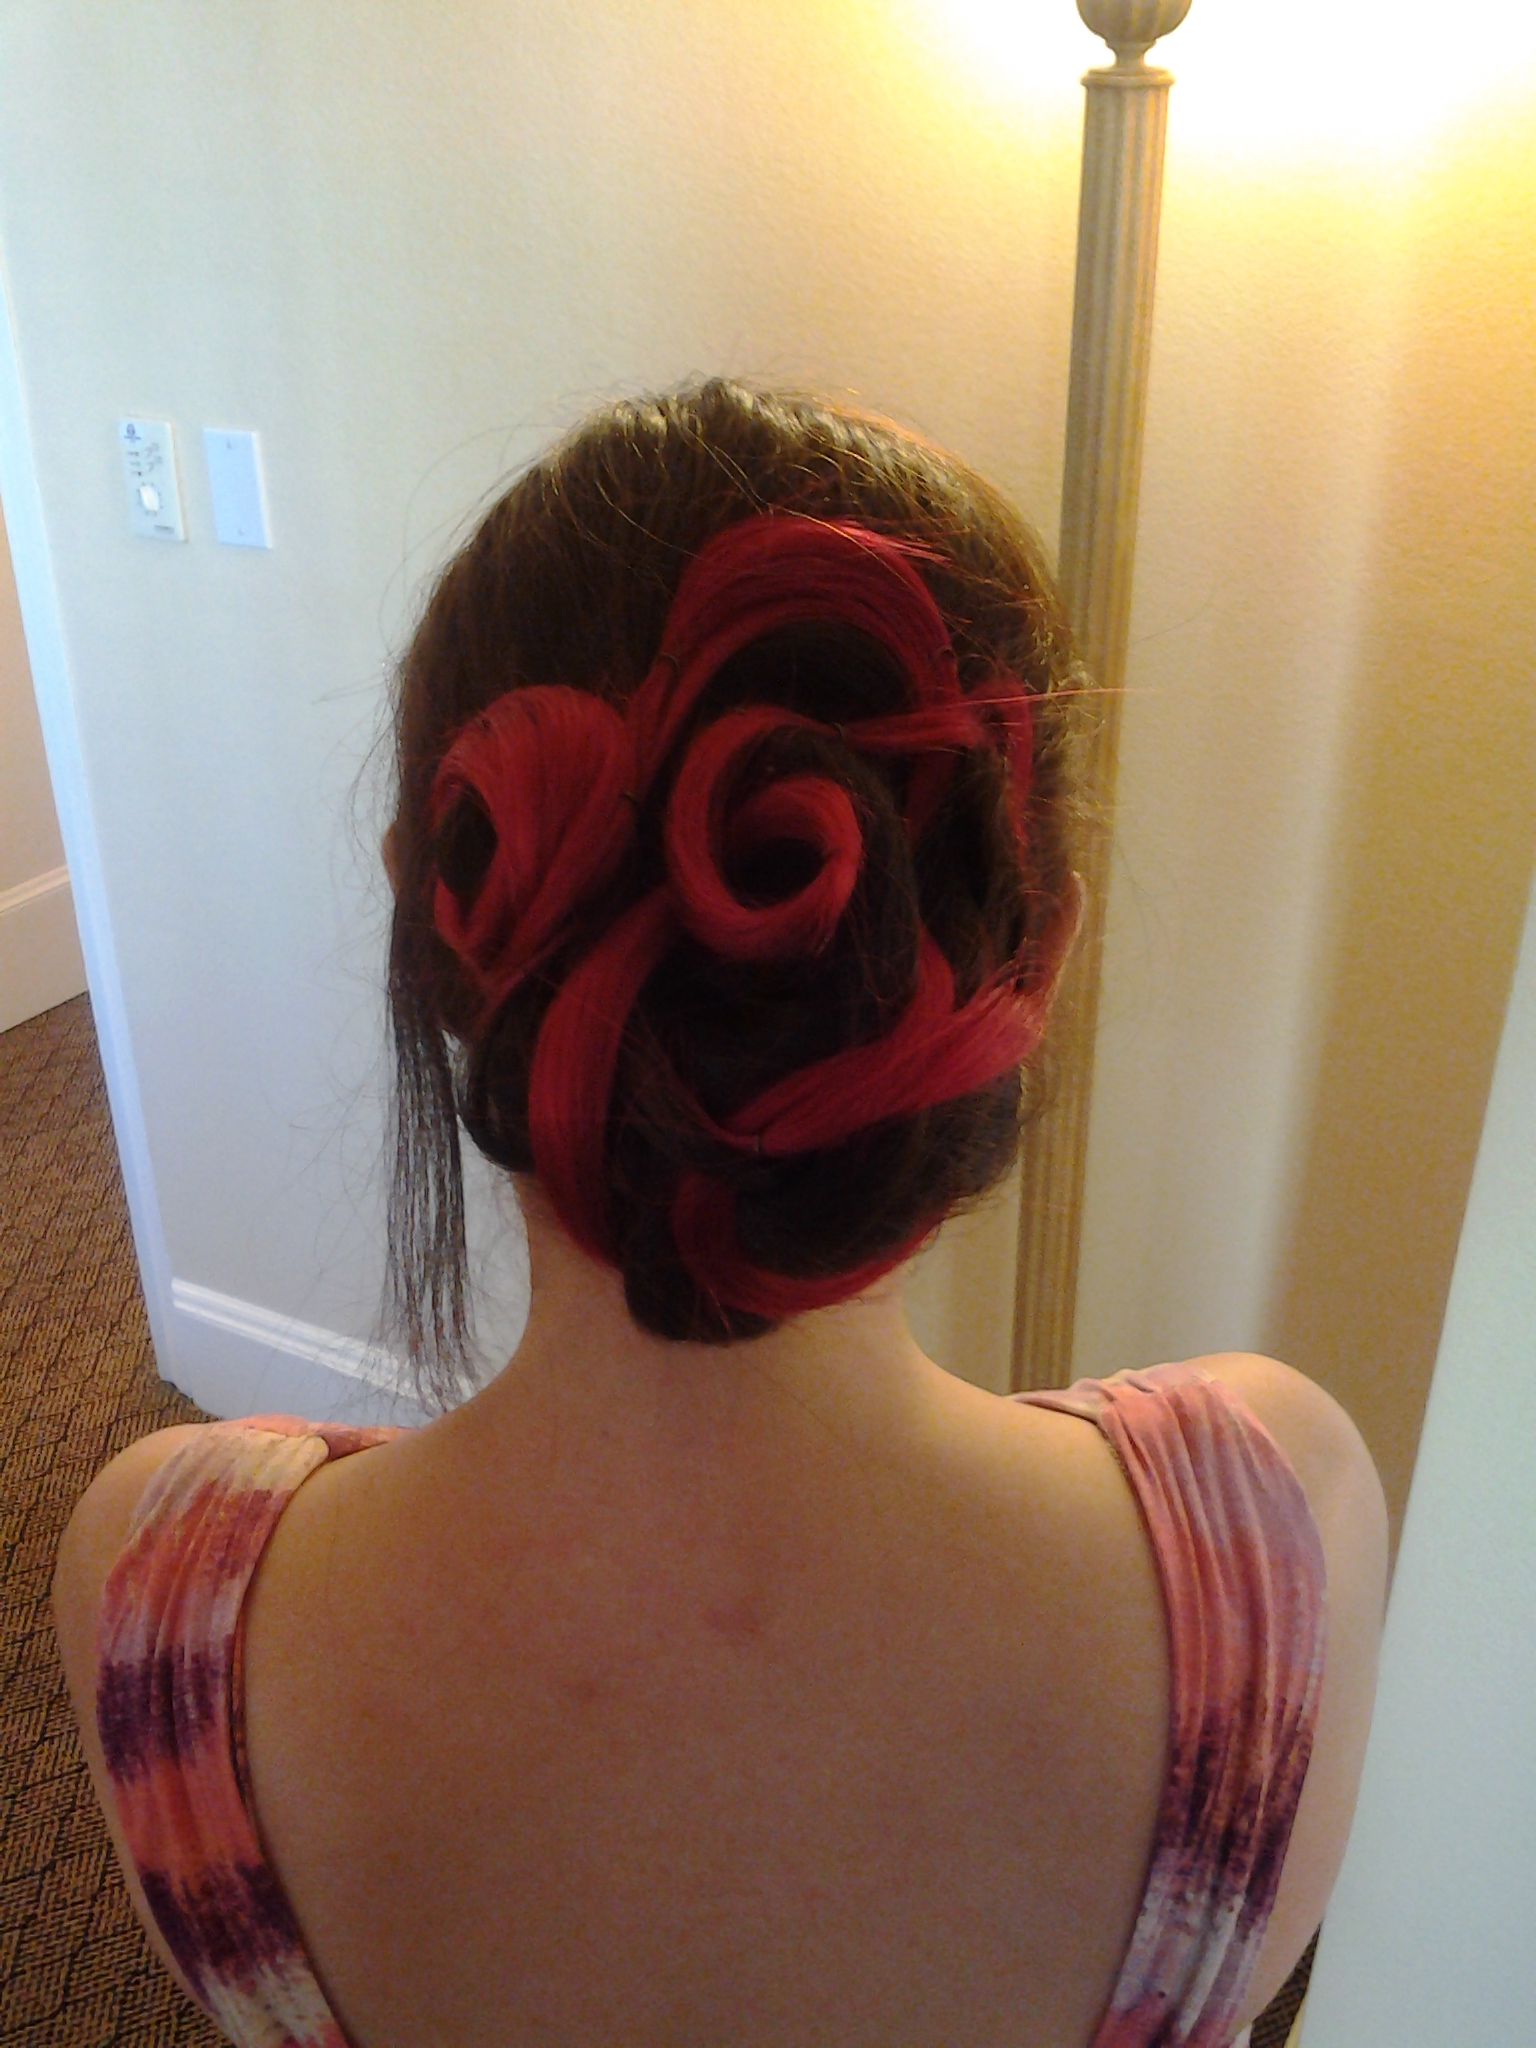 Here's my hair with most of the curls in it, before the headcage fascinator goes on and the tendril in front gets curled.